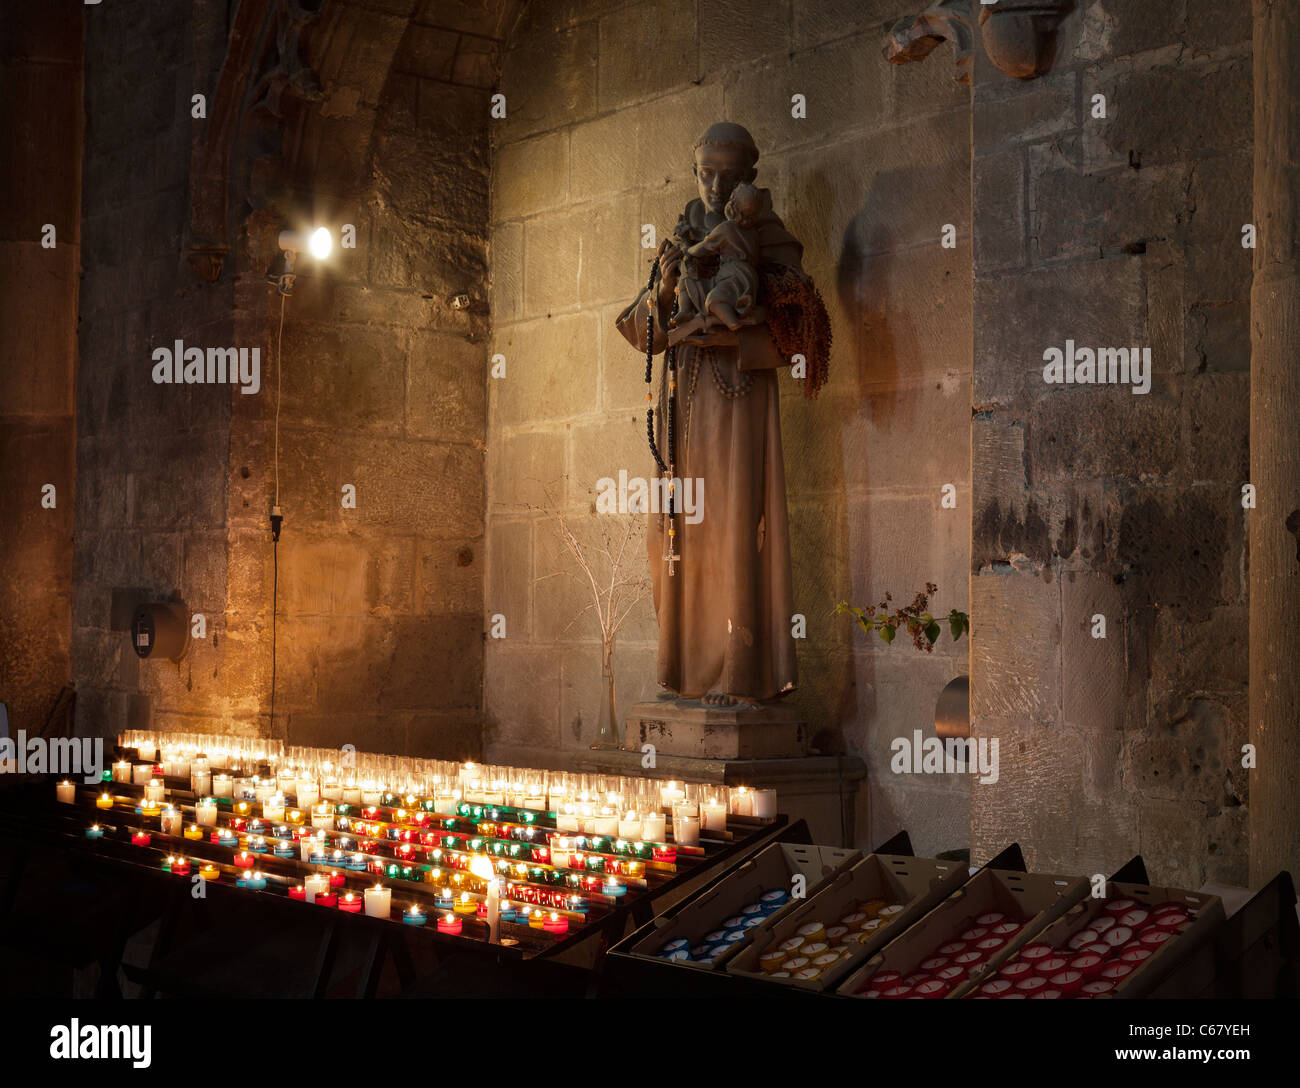 Intérieur de la Cathédrale Saint Michel (Carcassonne, France) Photo Stock